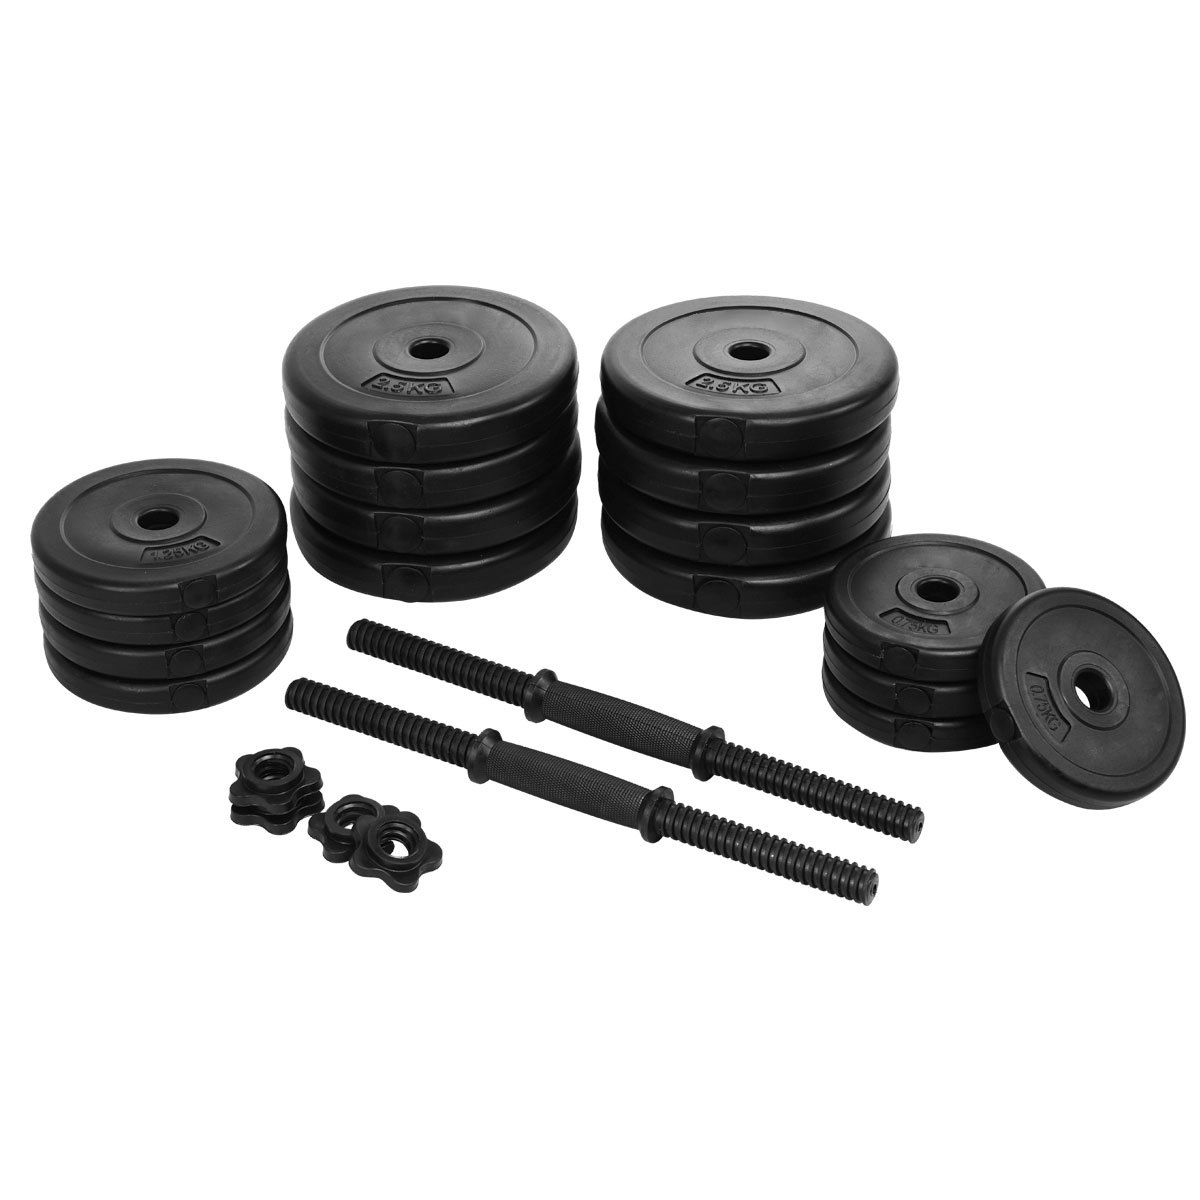 Gymax Weight Dumbbell Set 64 LB Adjustable Cap Gym Barbell Plates Body Workout - image 4 of 9